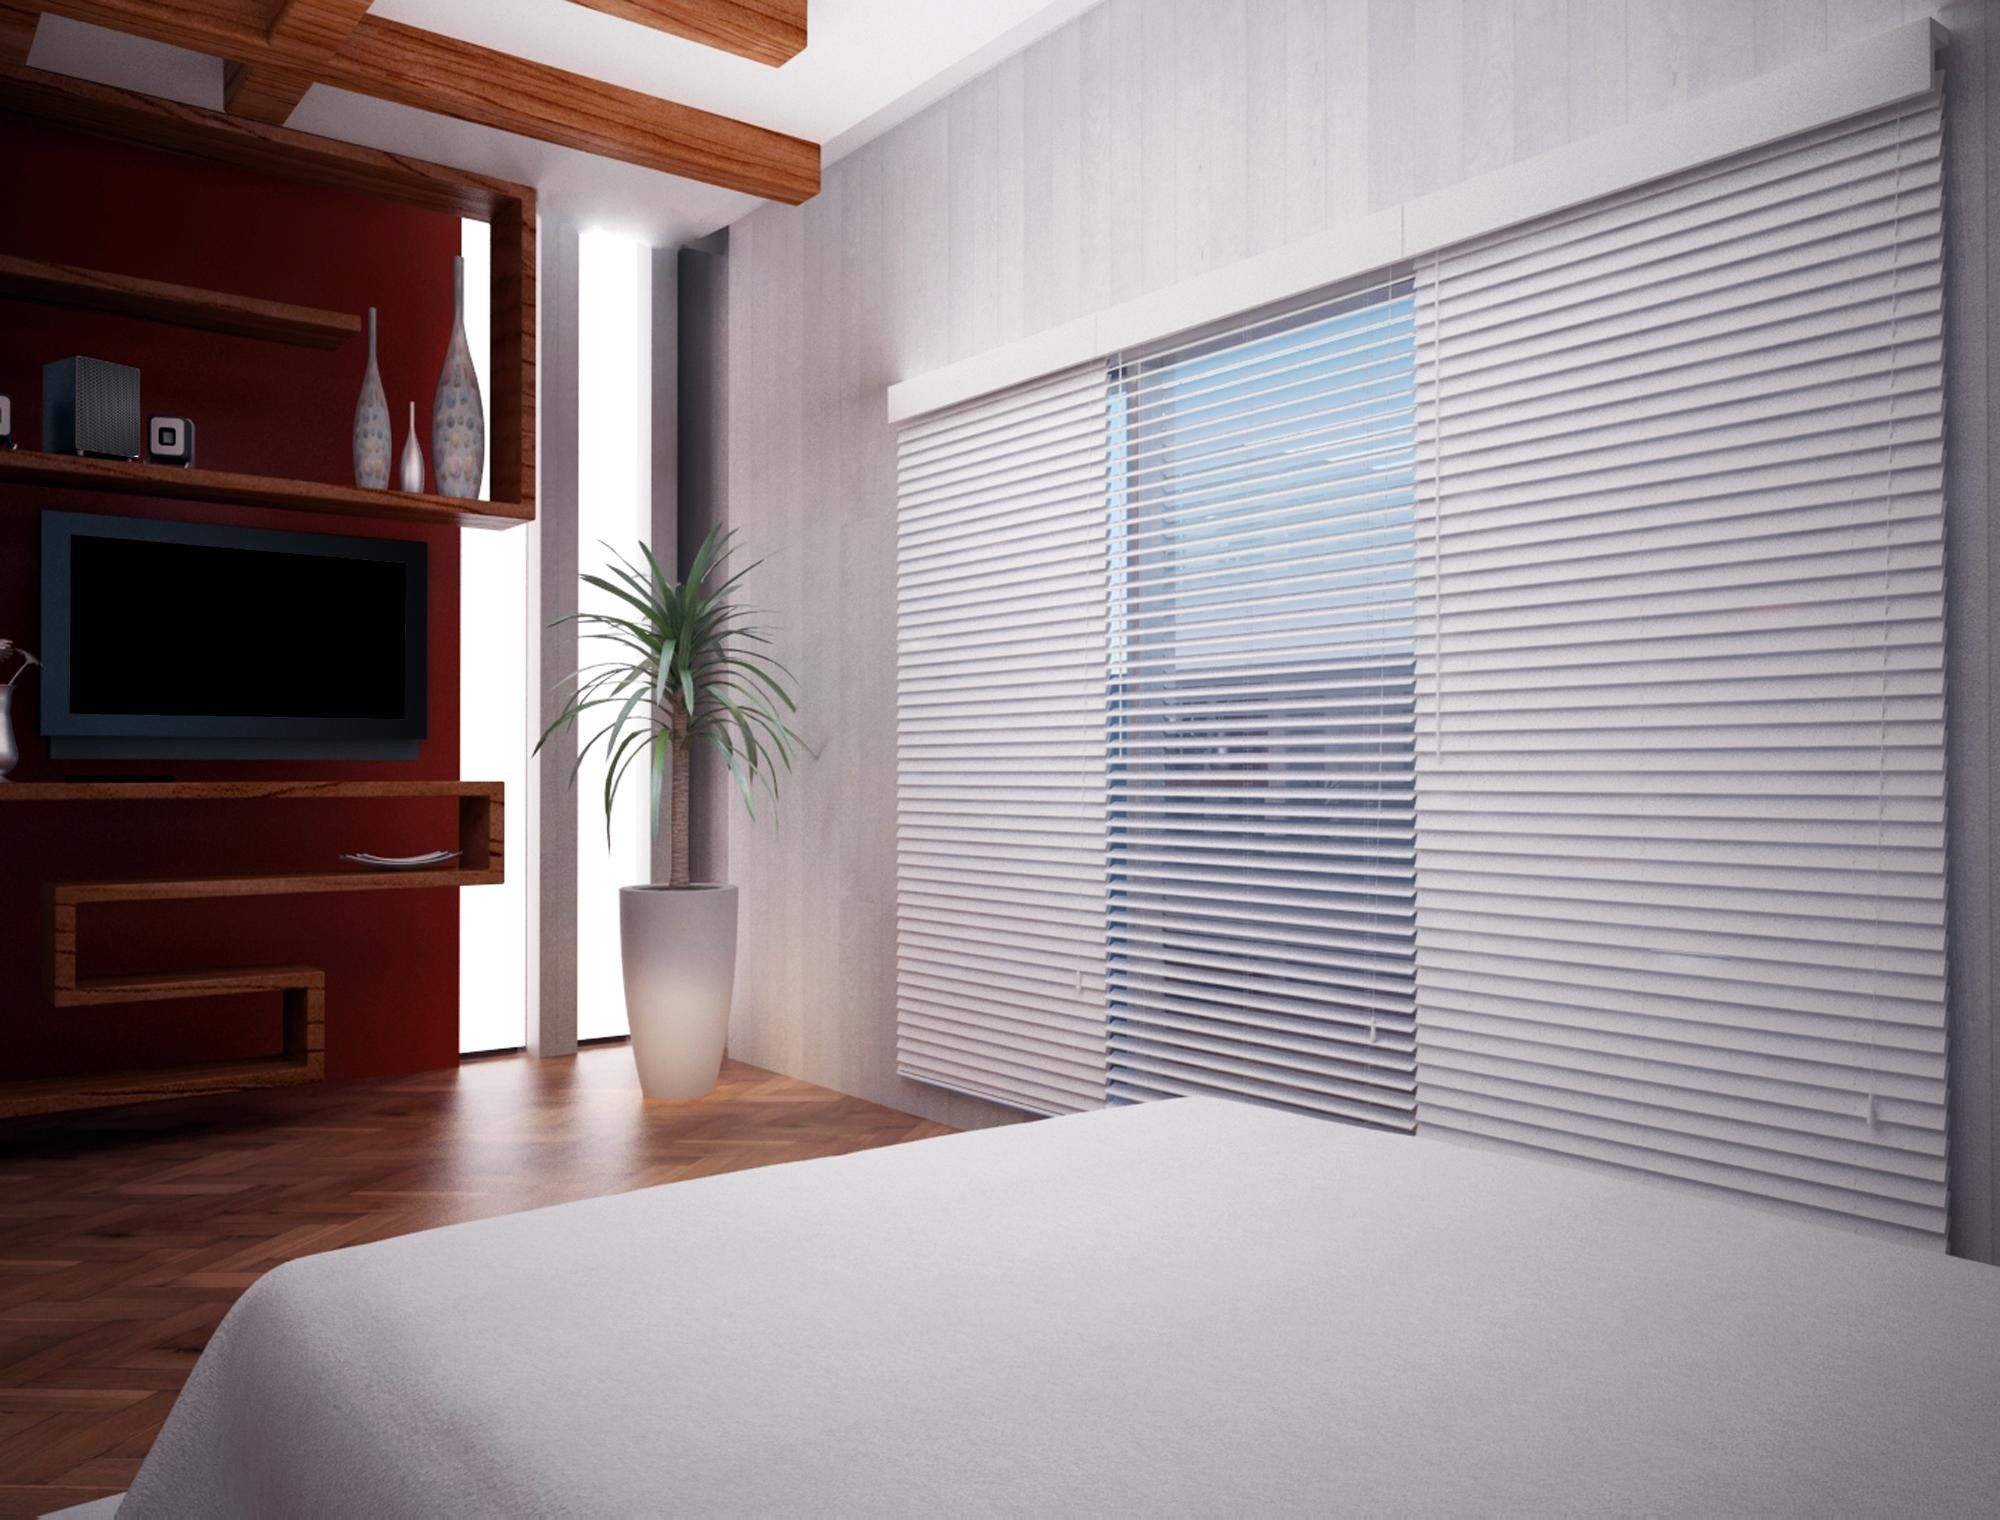 Vertical blind vanes vertical blinds for sliding glass doors